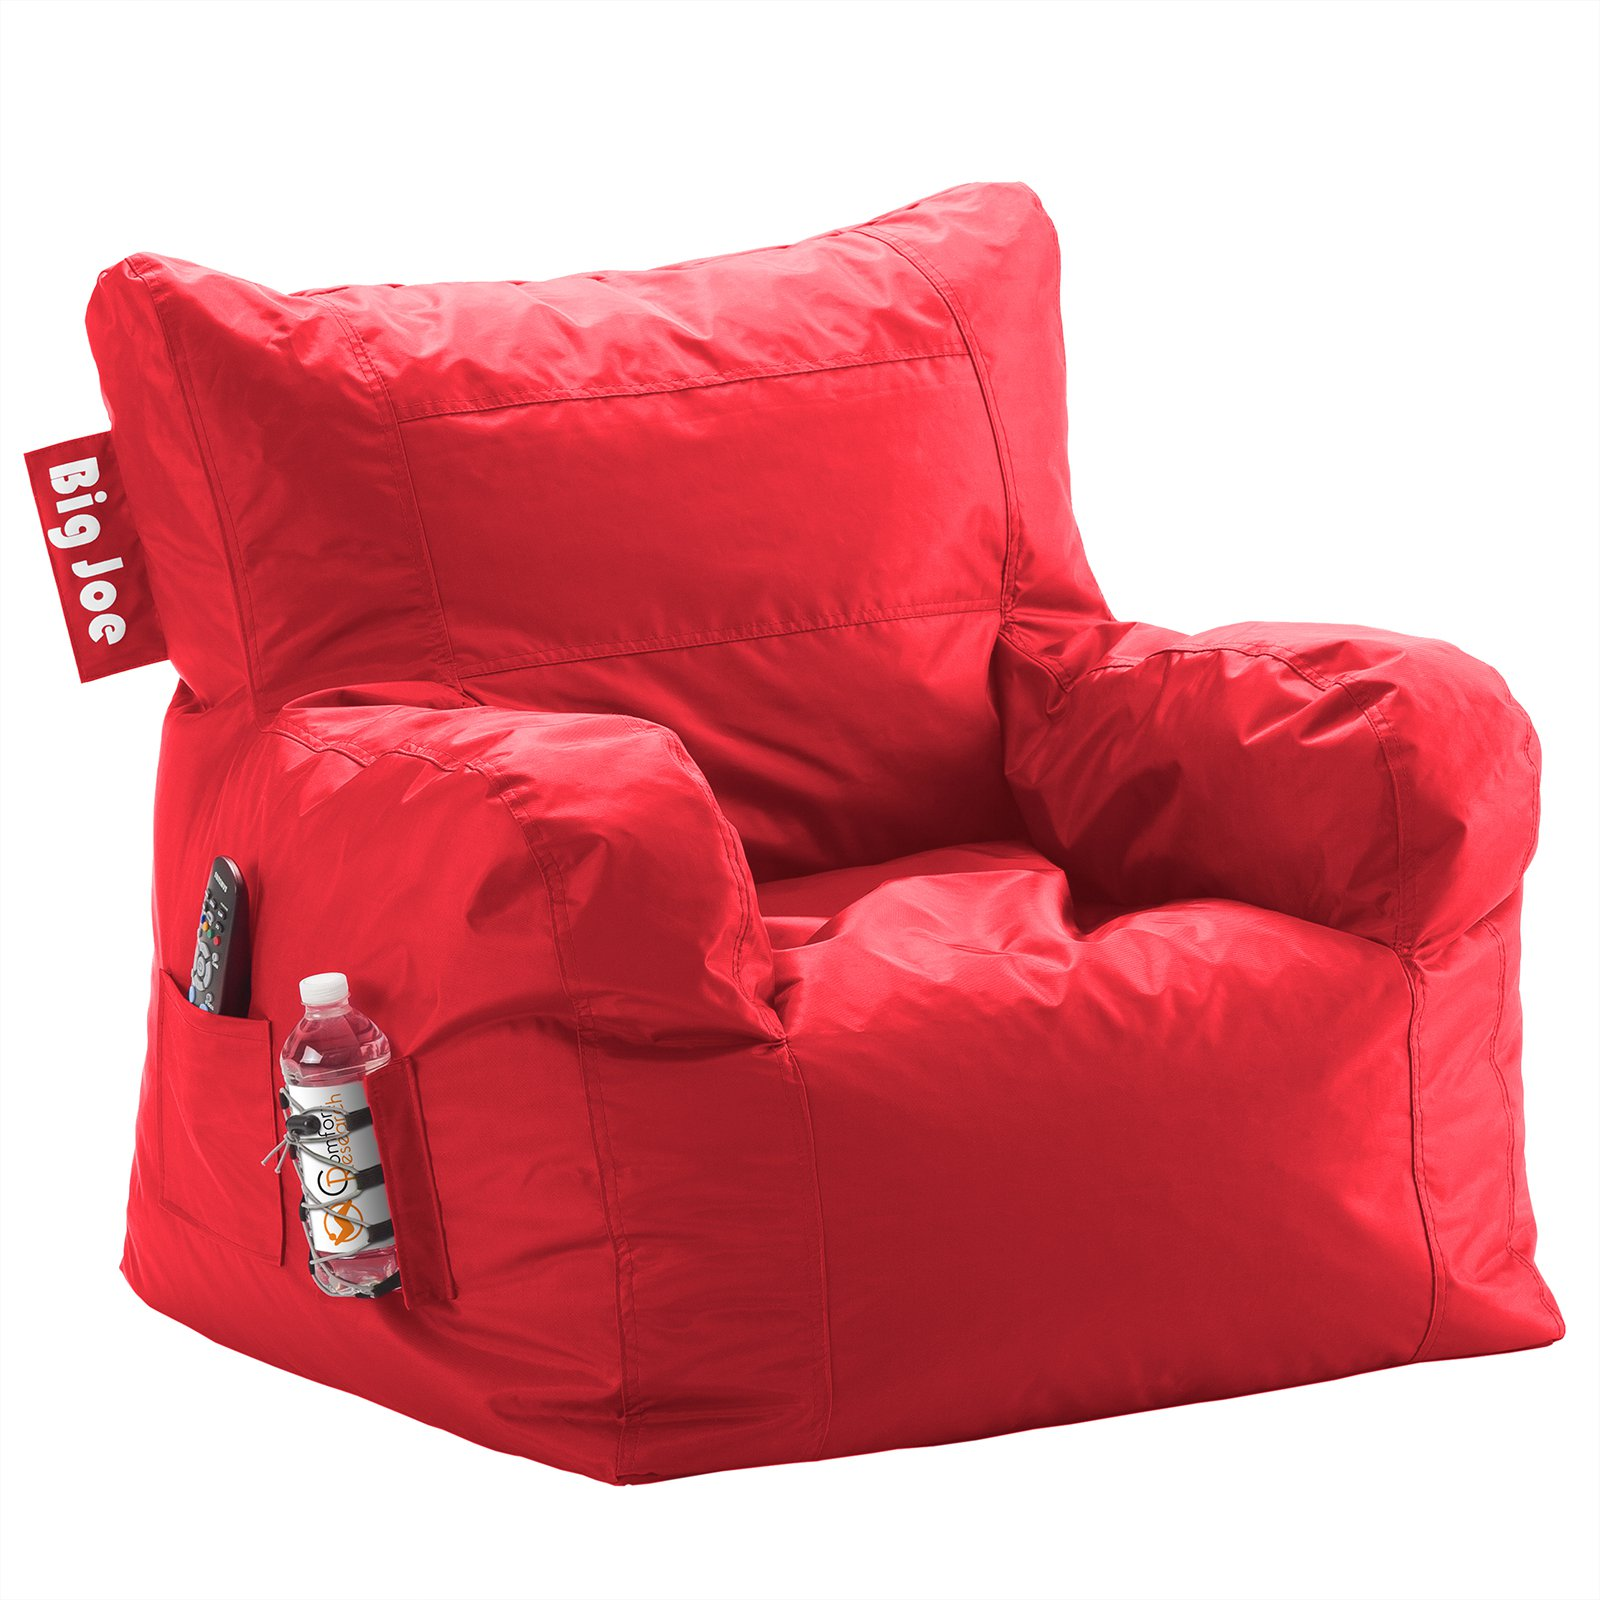 asher overstock by suede lounge christopher garden beanbag knight free today foot home shipping faux chair product